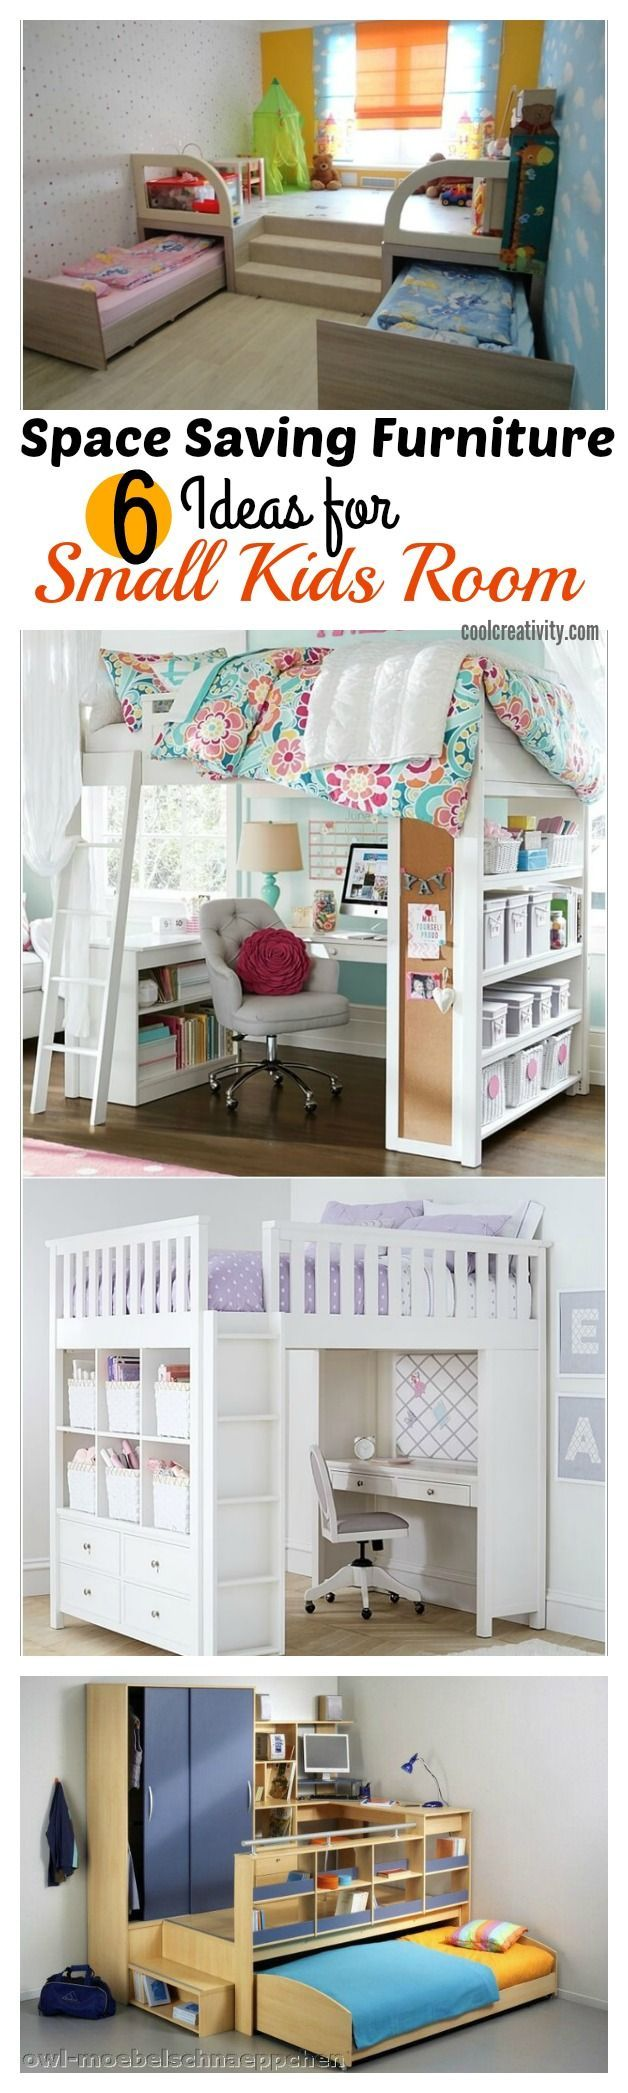 6 Space Saving Furniture Ideas For Small Kids Room Small Kids Room Space Saving Furniture Small Room Design